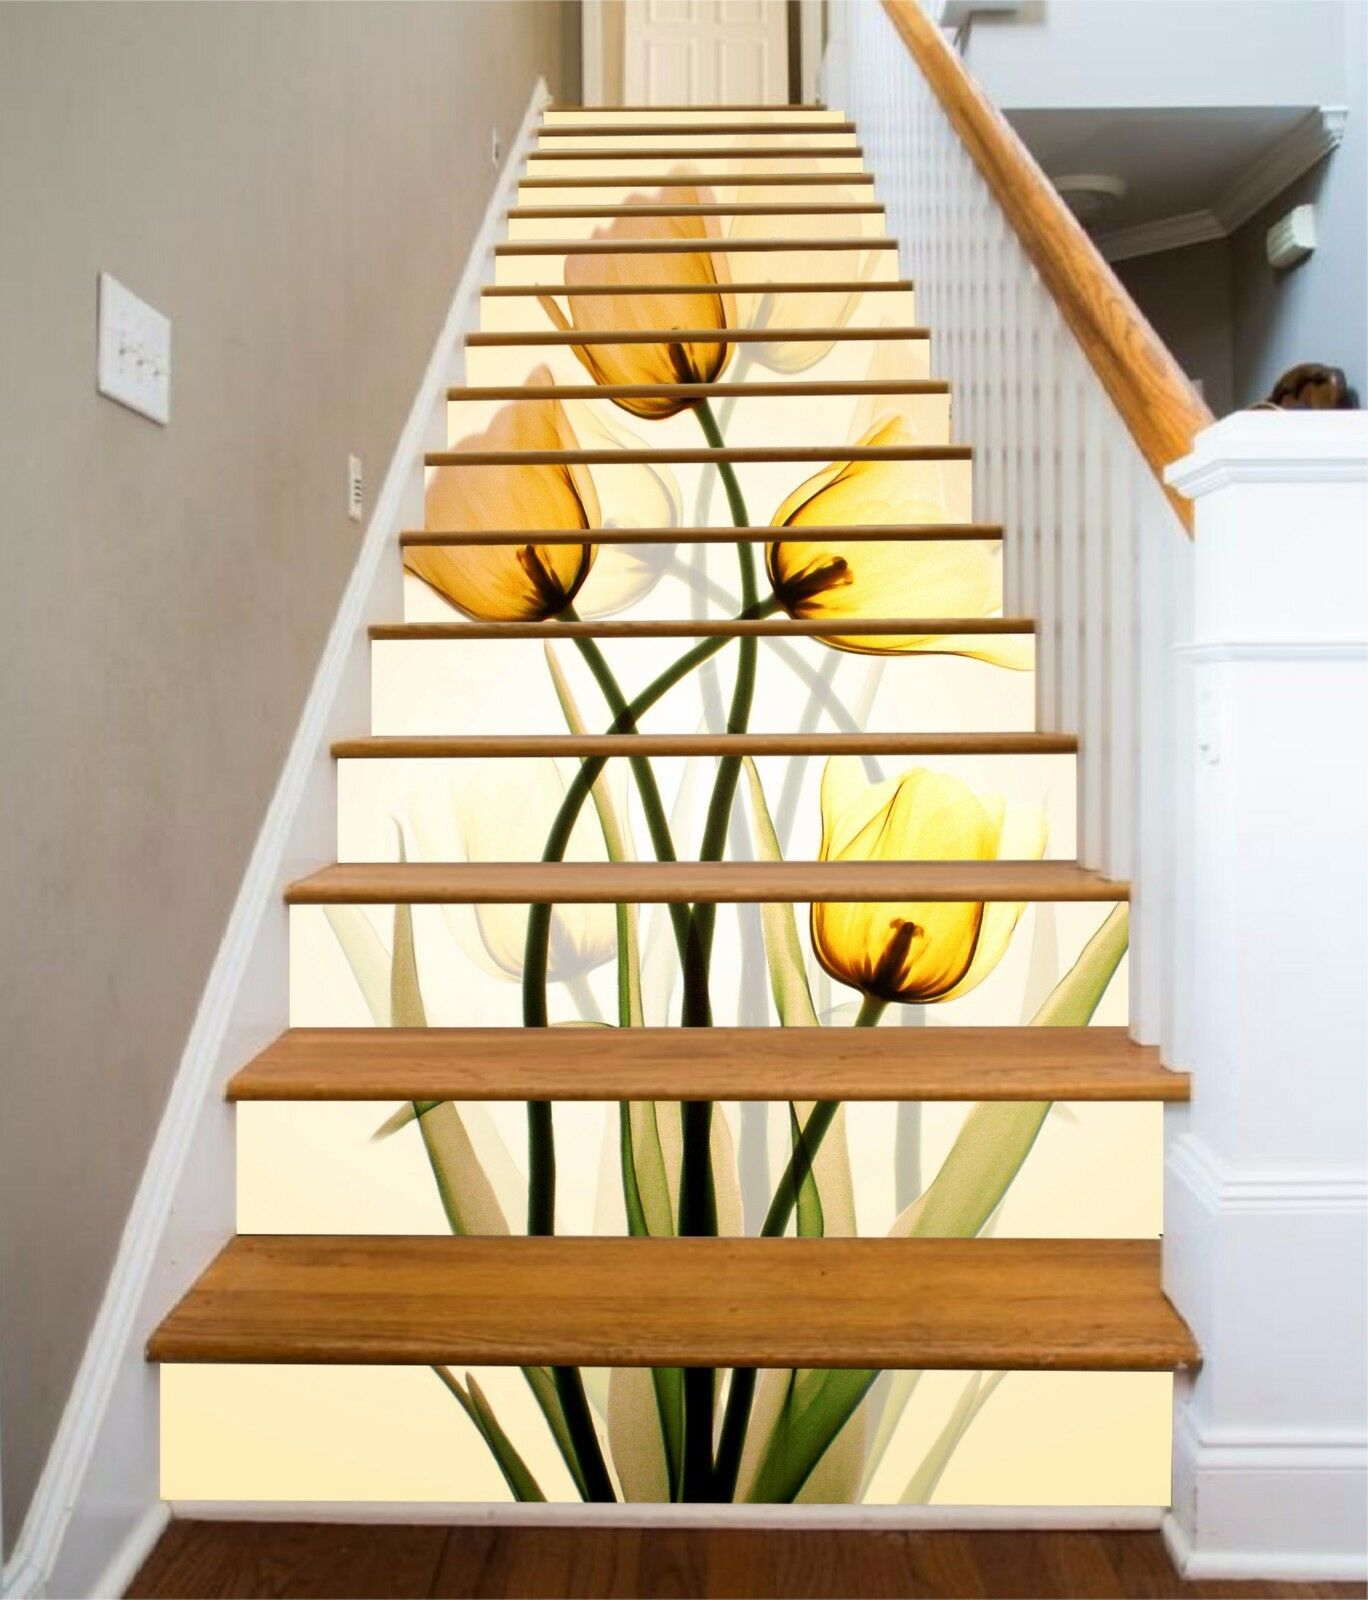 3D Tulip Flower 229 Stair Risers Decoration Photo Mural Vinyl Decal Wallpaper AU